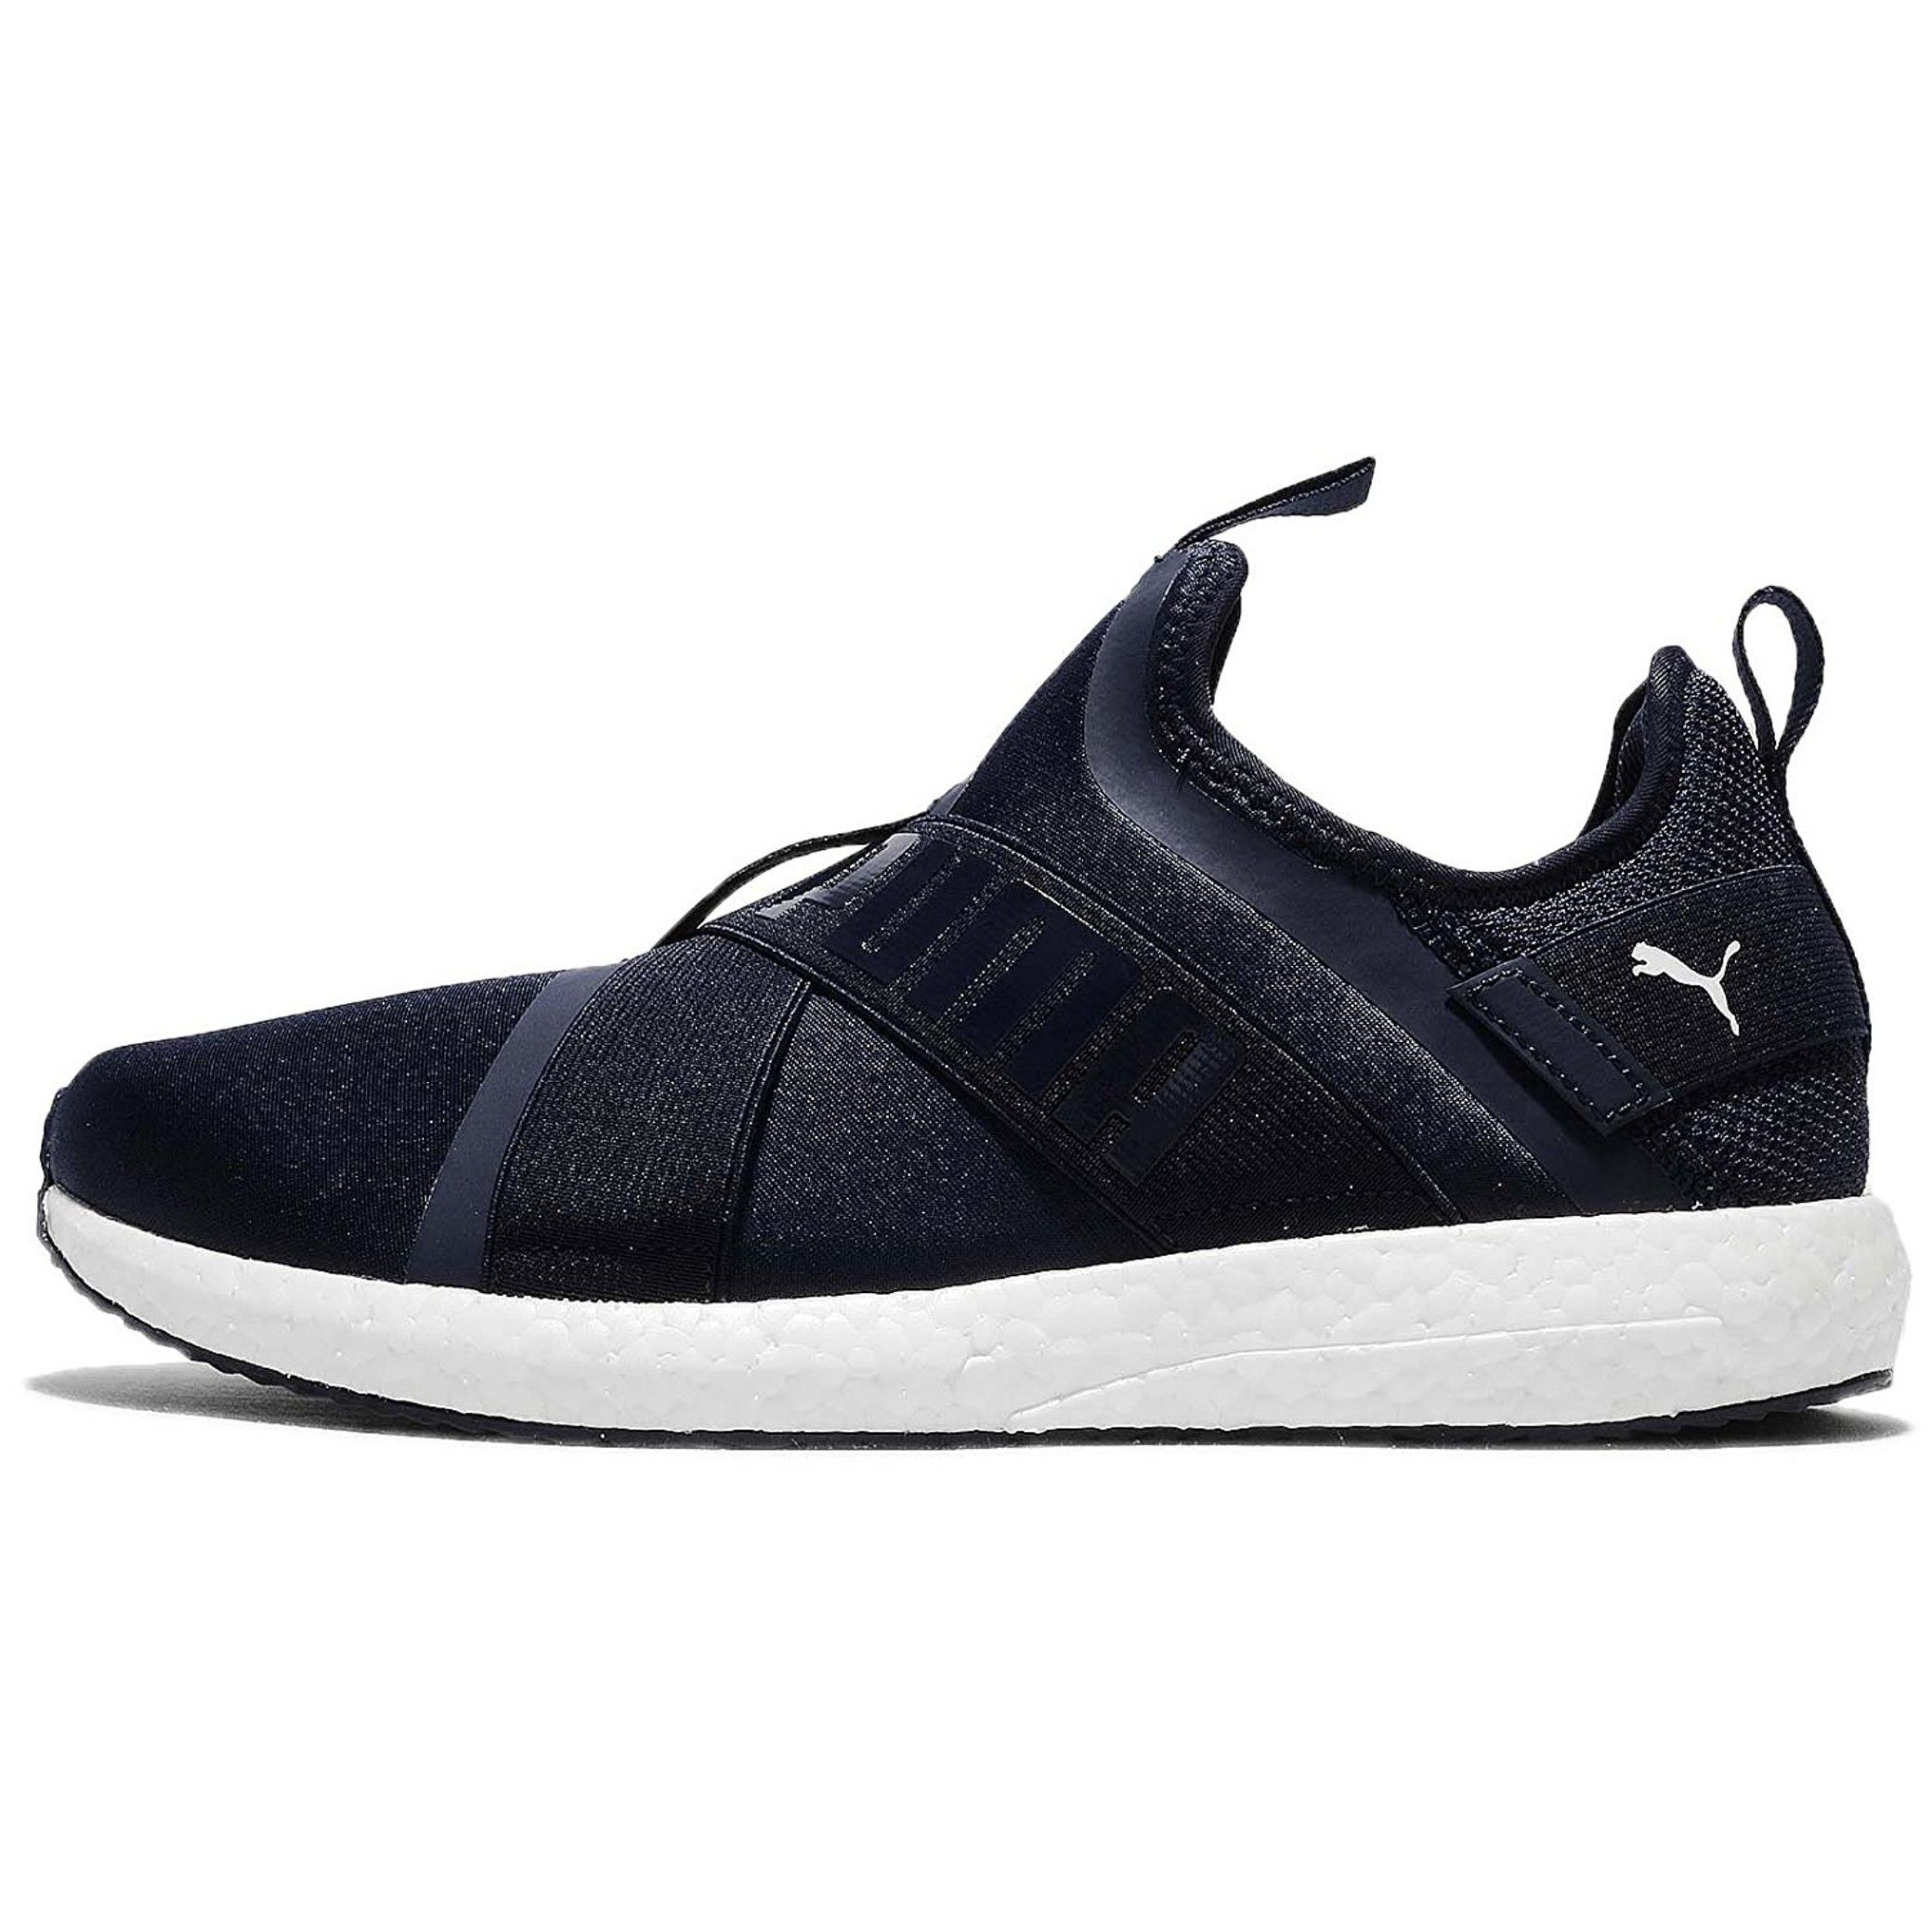 67e4474440ca7d Puma Unisex Mega Nrgy X Navy Running Shoes - Buy Puma Unisex Mega Nrgy X  Navy Running Shoes Online at Best Prices in India on Snapdeal